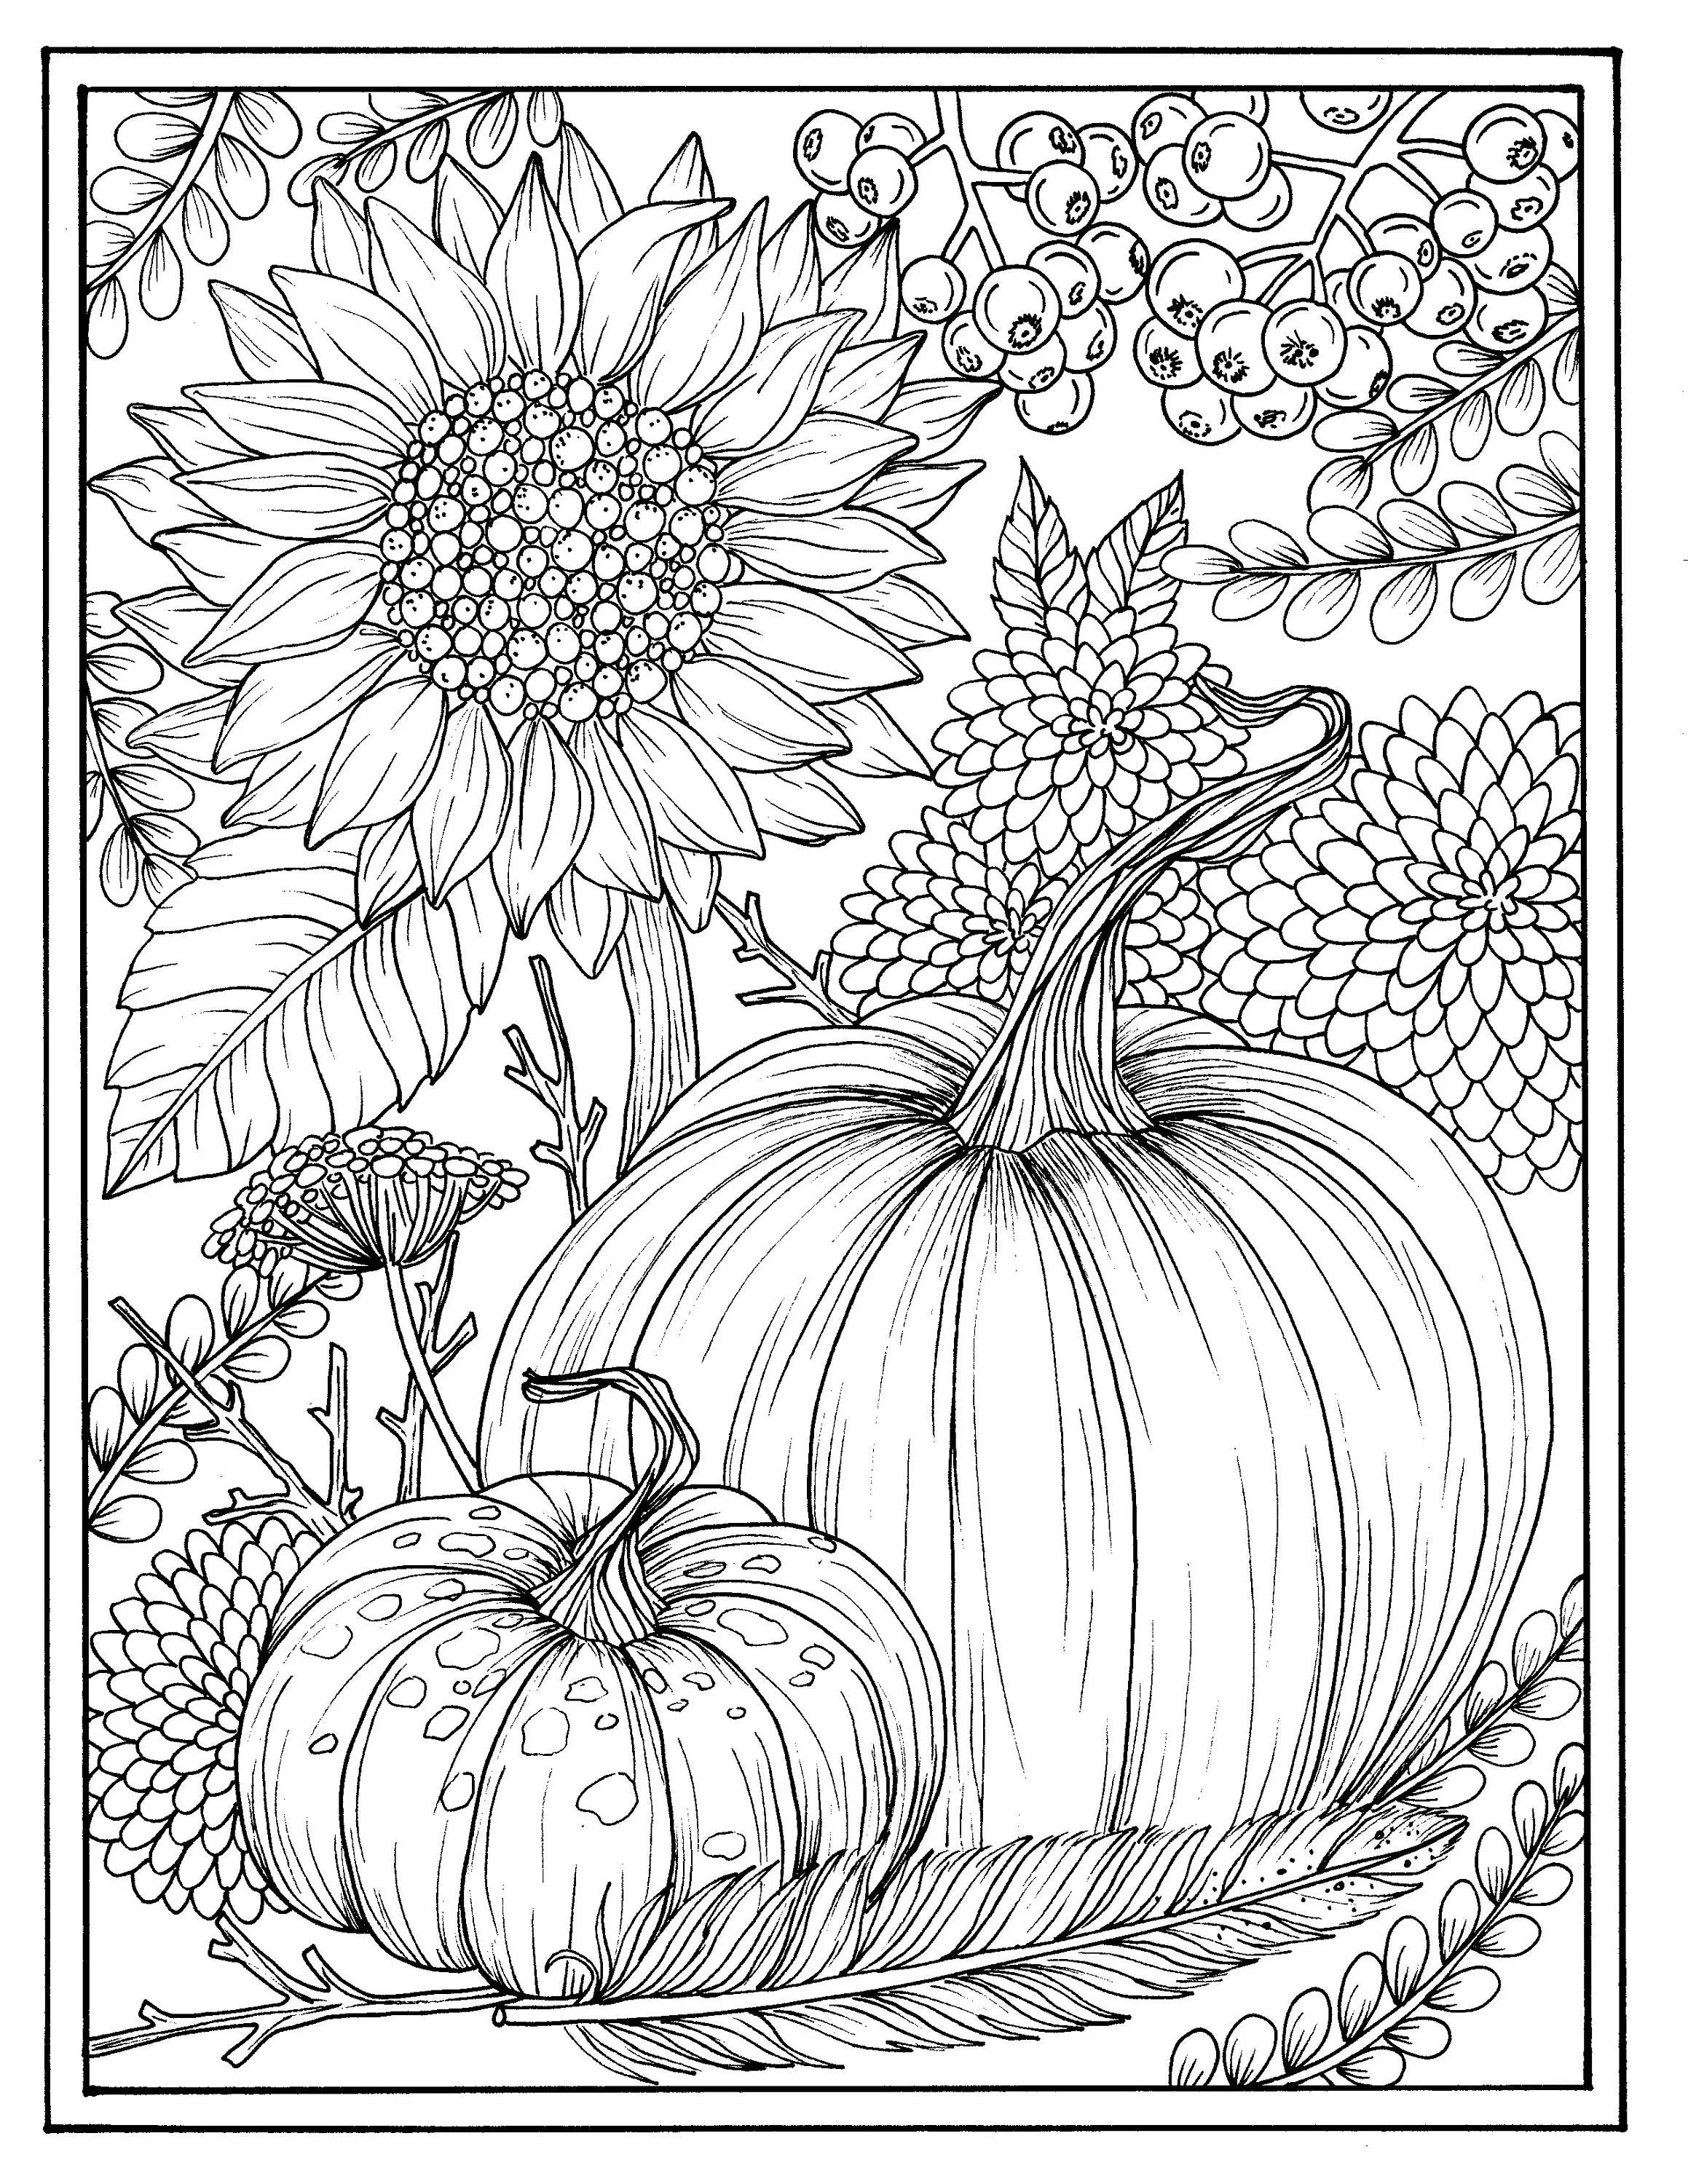 Fall Flowers And Pumpkins Digital Coloring Page